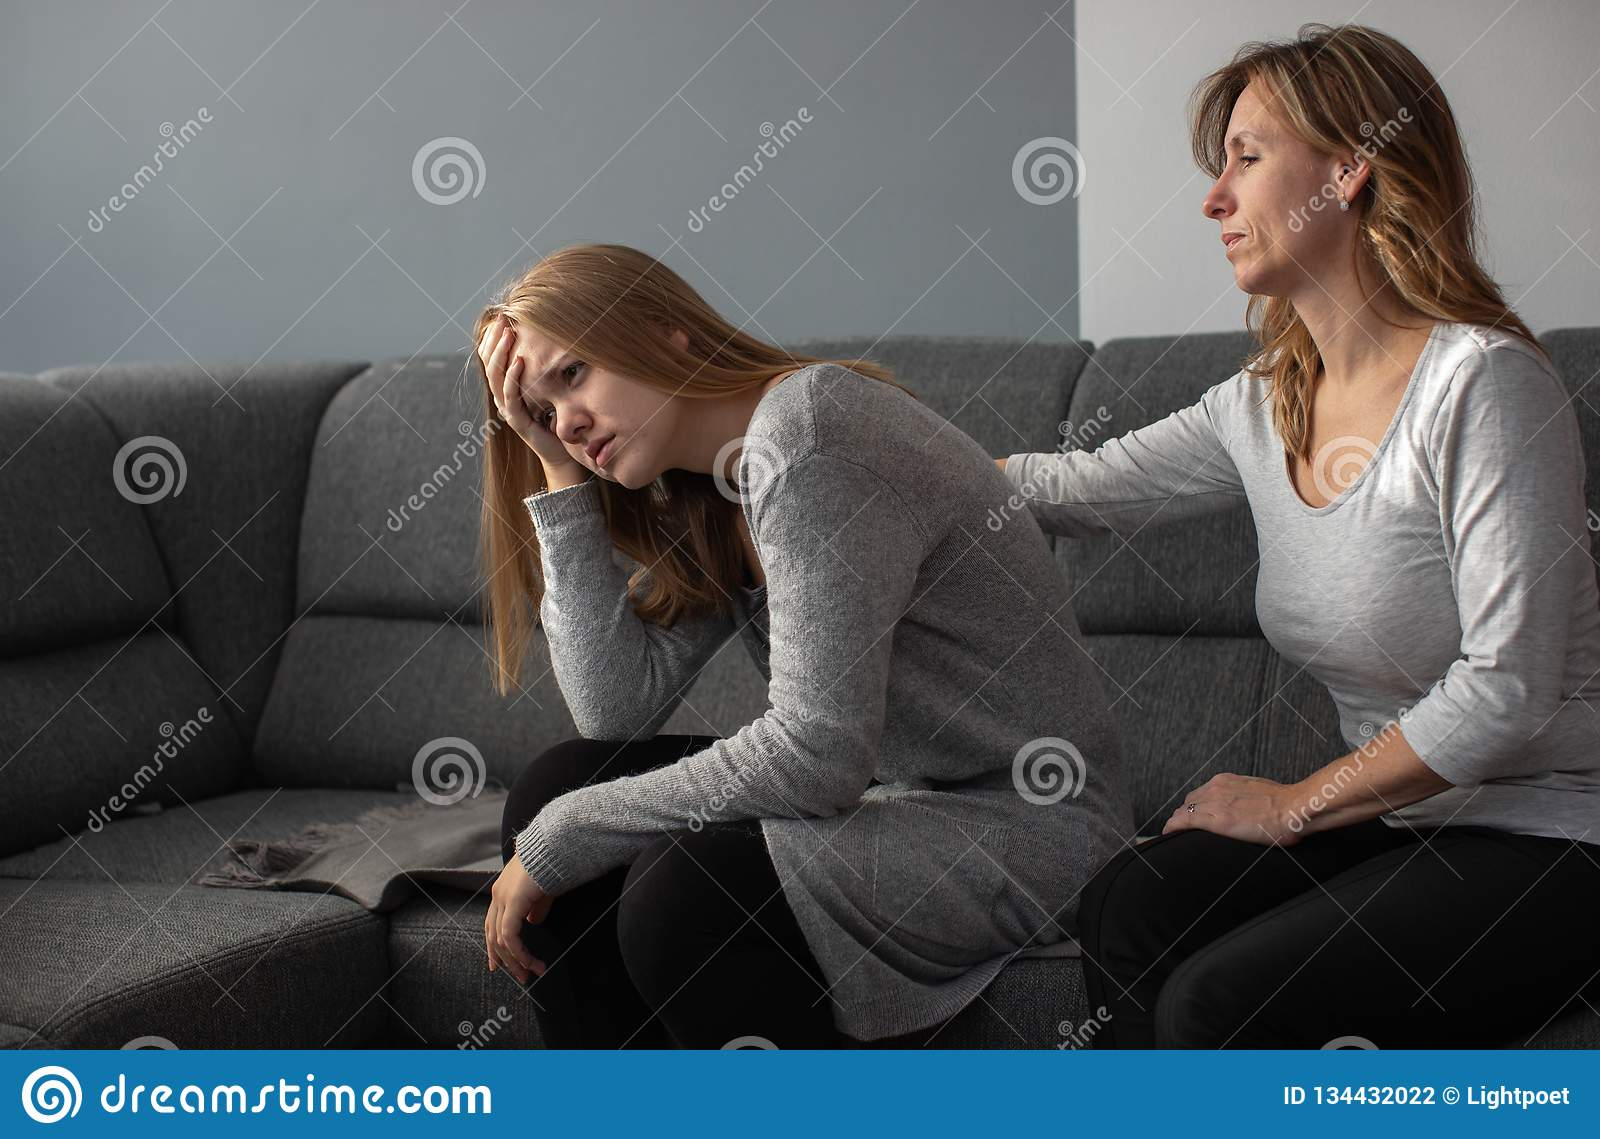 Depressed teen suffering from anxiety being taken care of by her mother